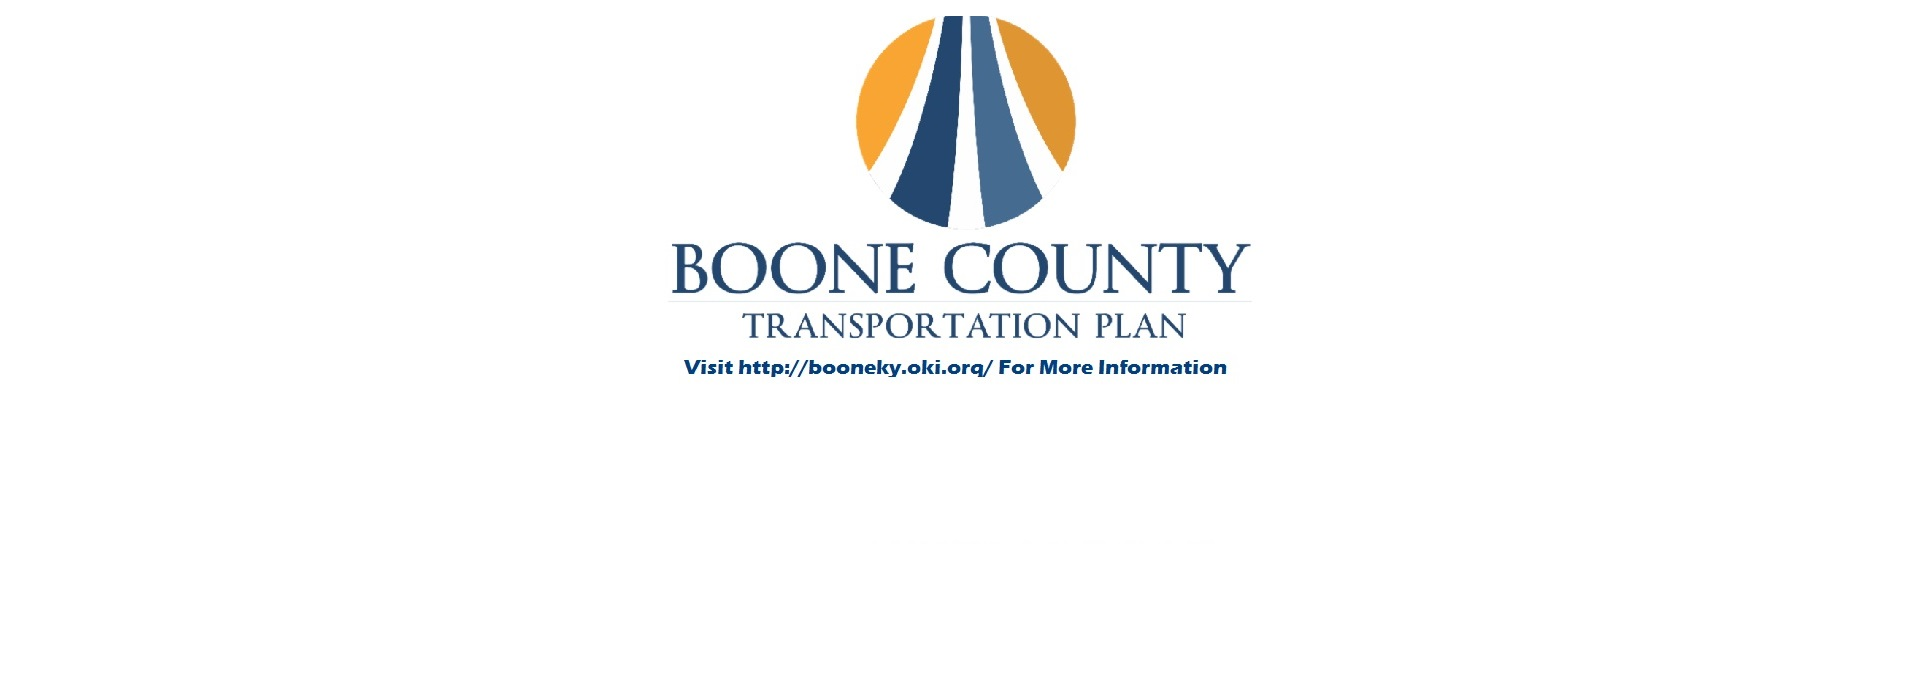 transportation plan logo full homepage rev 2